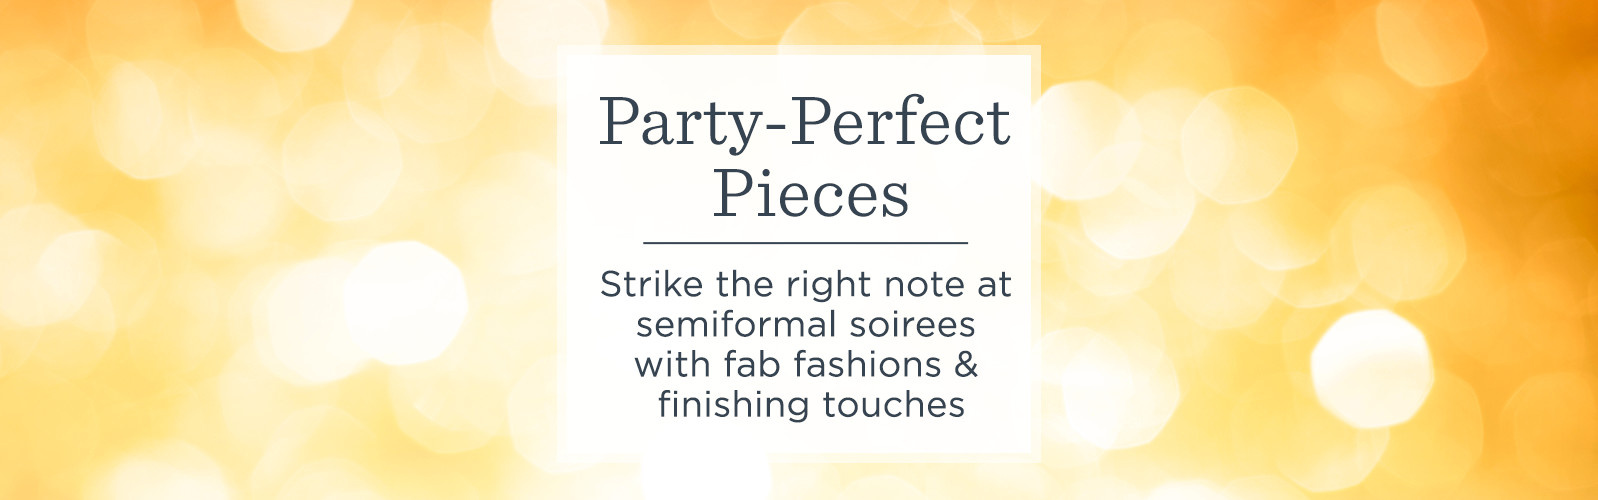 Party-Perfect Pieces.  Strike the right note at semiformal soirees with fab fashions & finishing touches.